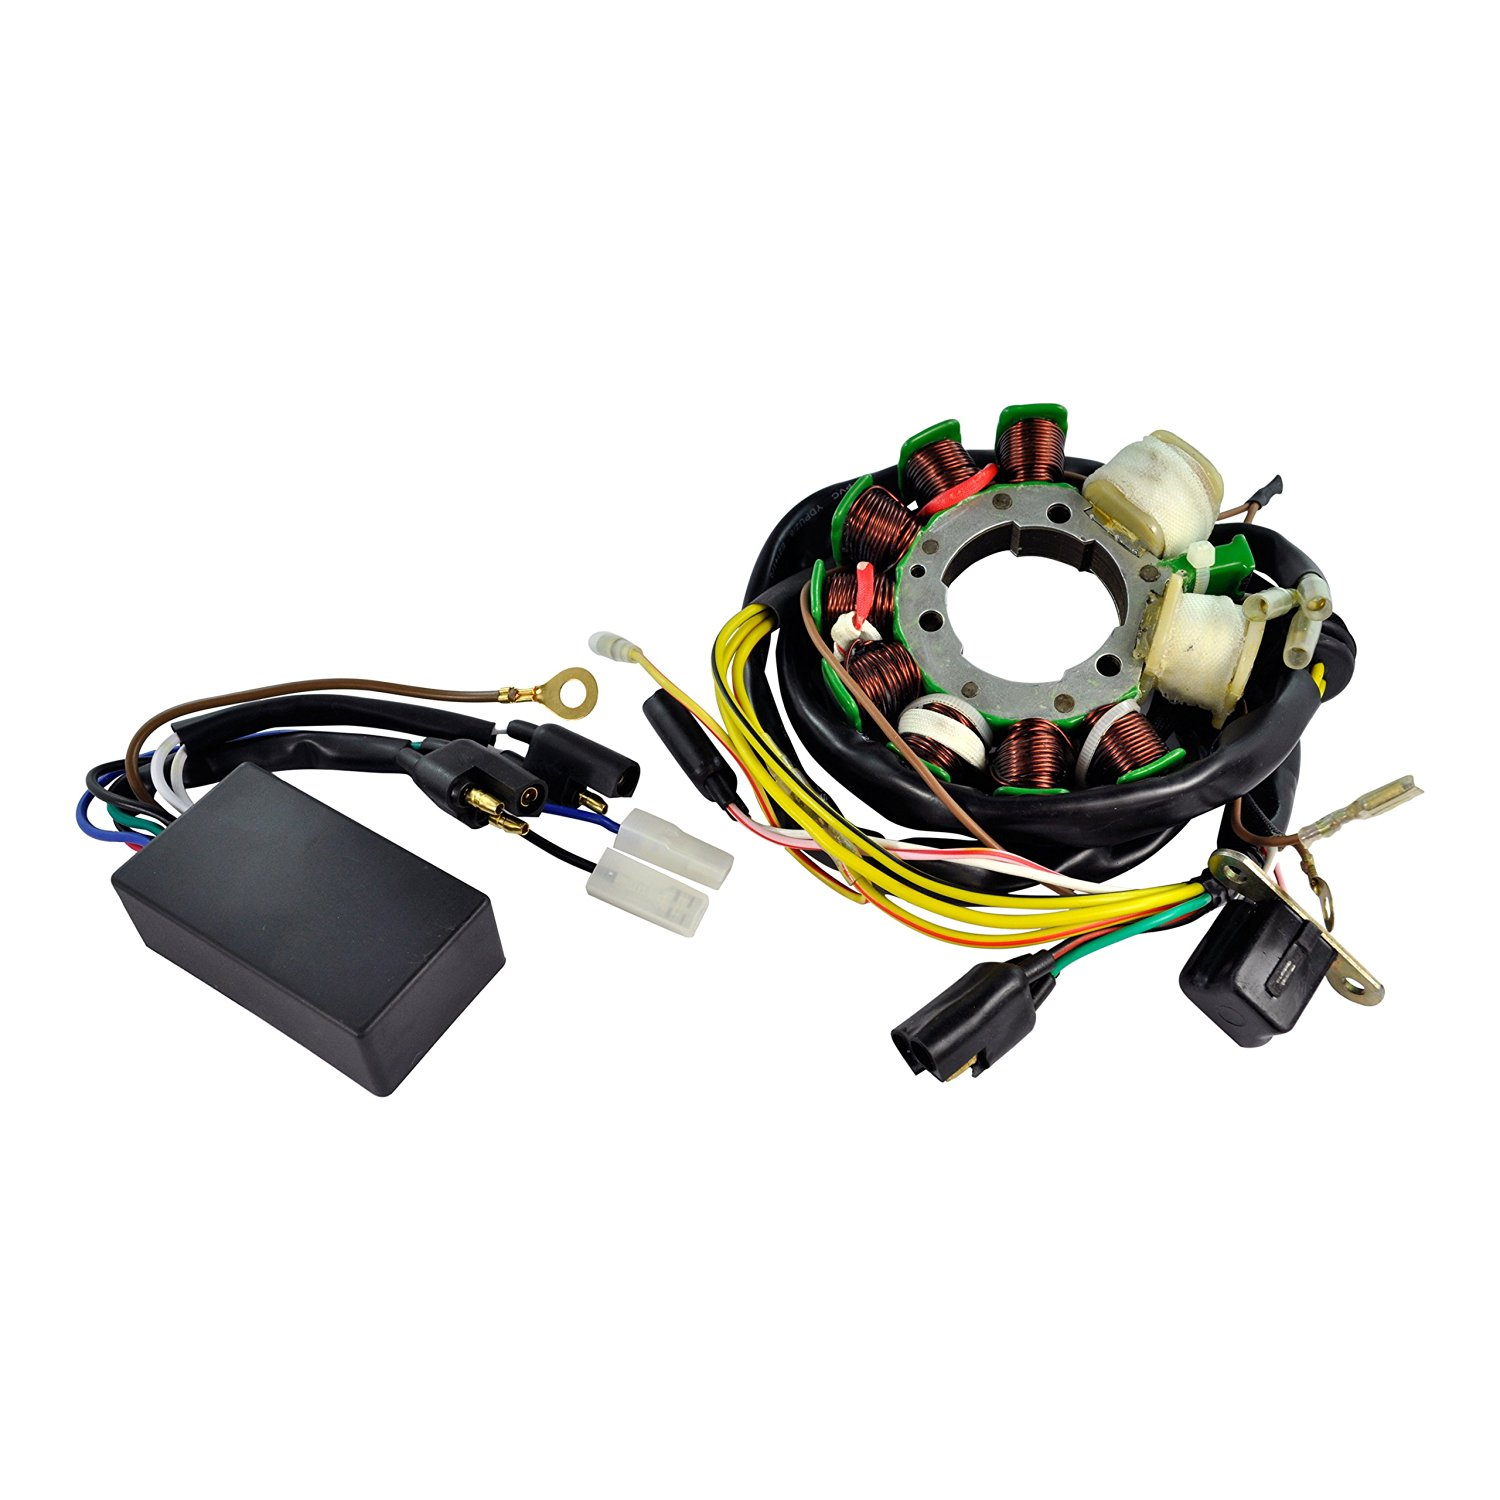 Cheap Mpp 335 400 Find Deals On Line At Alibabacom 1995 Polaris Sportsman Wiring Schematic Get Quotations Stator And Cdi Box Atv 2002 Magnum 425